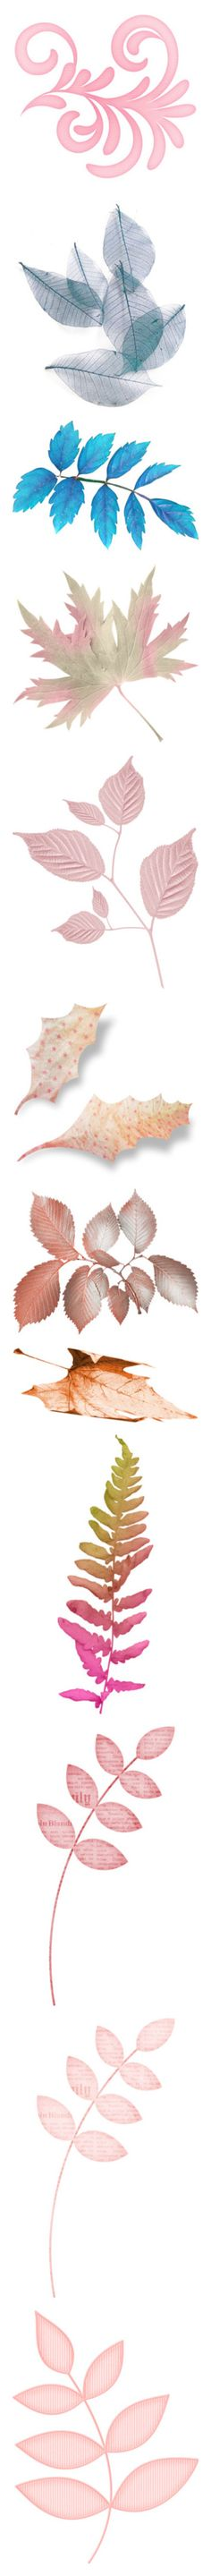 """Pastel Colored Leaves"" by judymjohnson ❤ liked on Polyvore featuring backgrounds, filler, flowers, plants, leaves, effect, autumn, fall, fillers and pink"